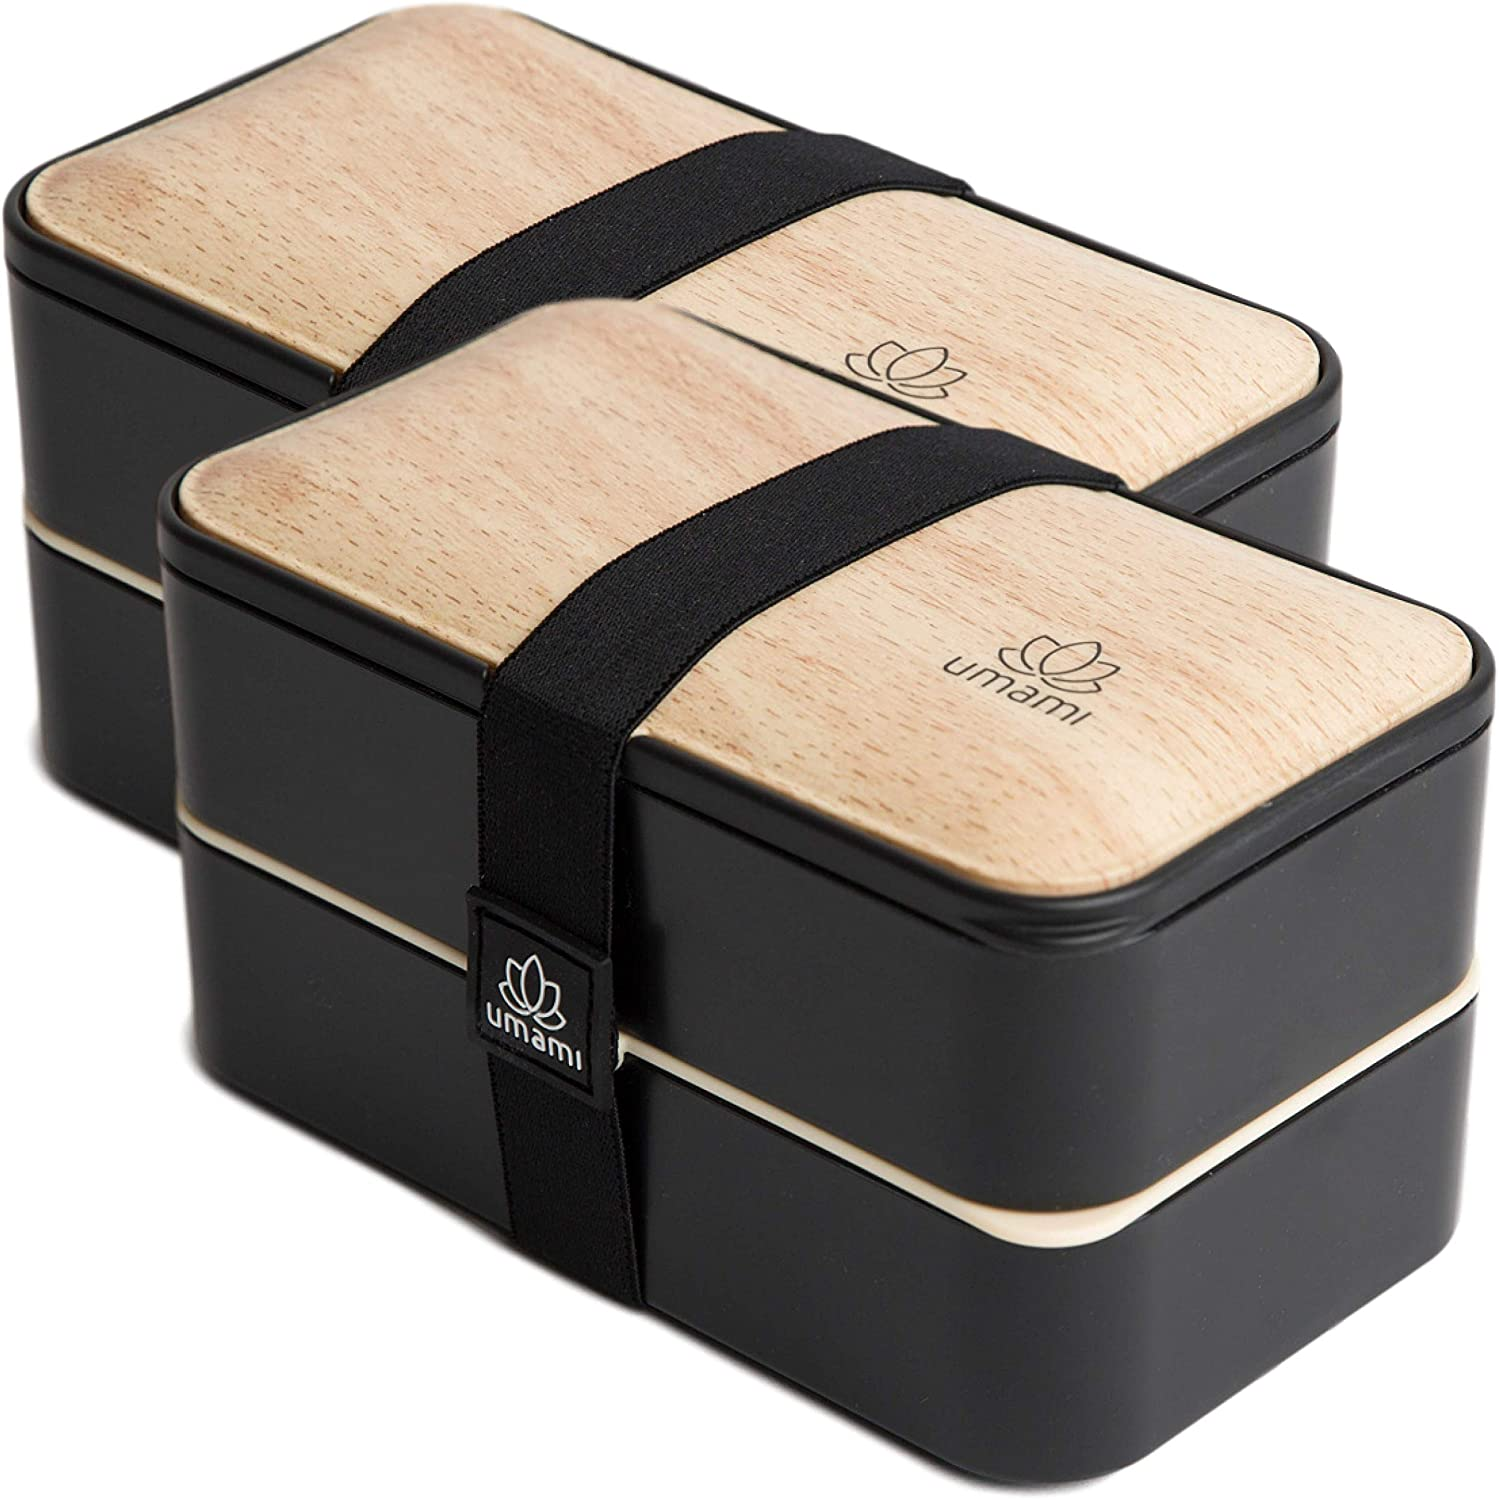 UMAMI All-in-One Bento Box for Adults/Children, 1 New Sauce Pot,4 Full Wood Cutlery Set & 2 Dividers Included, 2 Meal Prep Lunch Box Food Containers for Men/Women, Microwave, Dishwasher & Freezer Safe